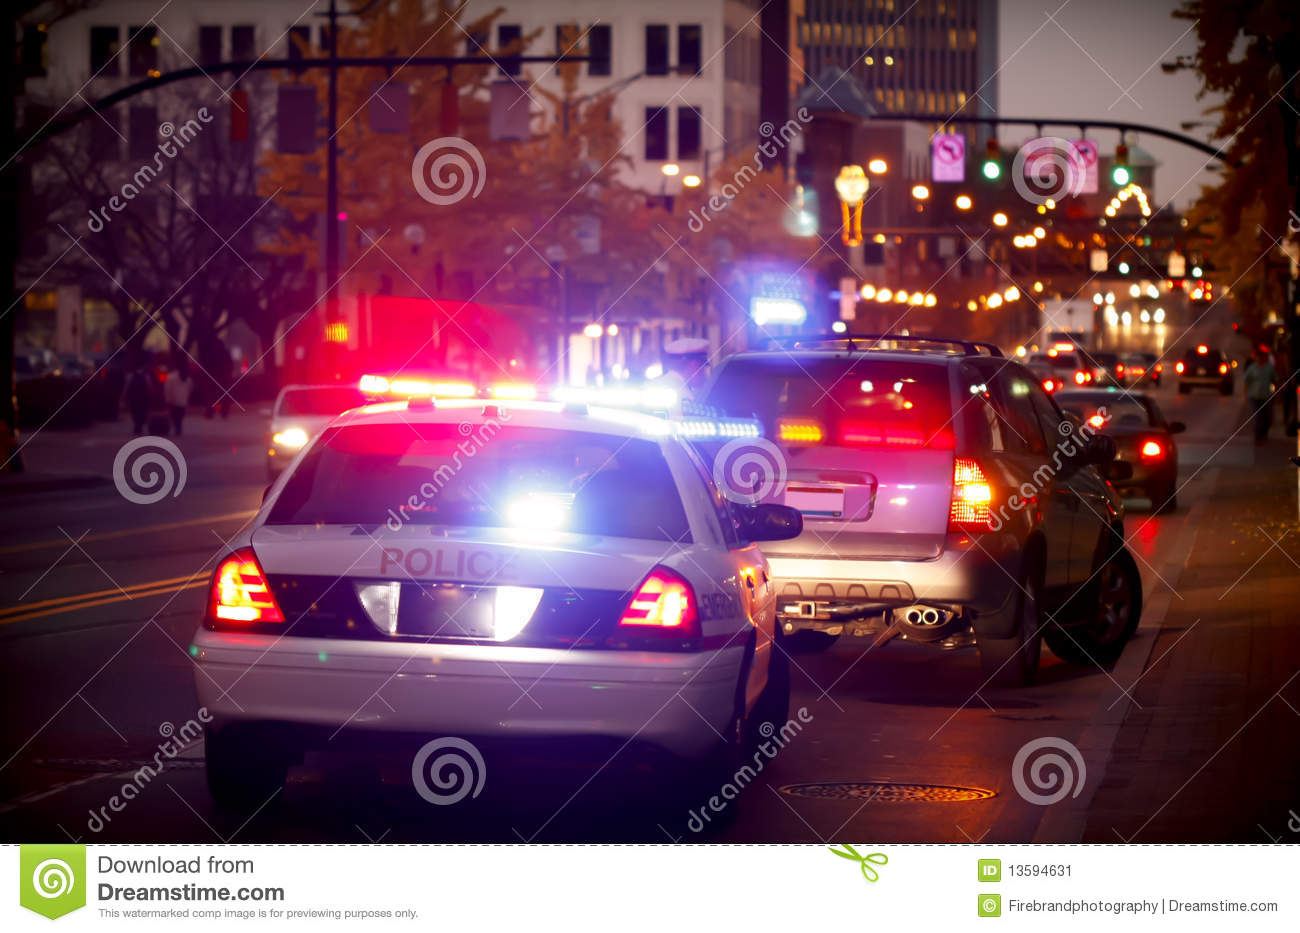 Pulled over by police car